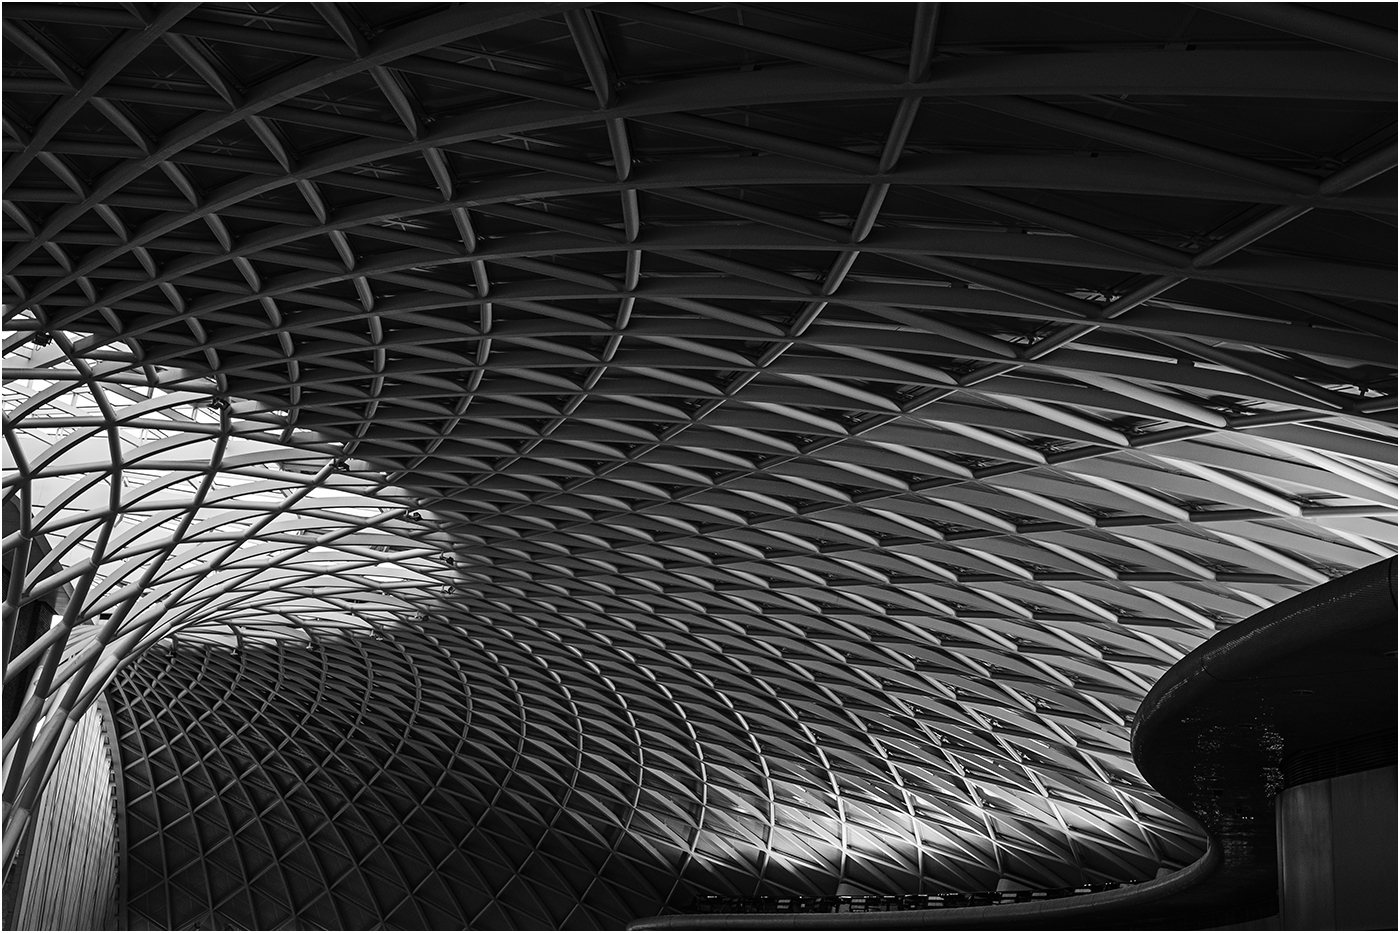 Sweeping Lines by Paul Whitmarsh